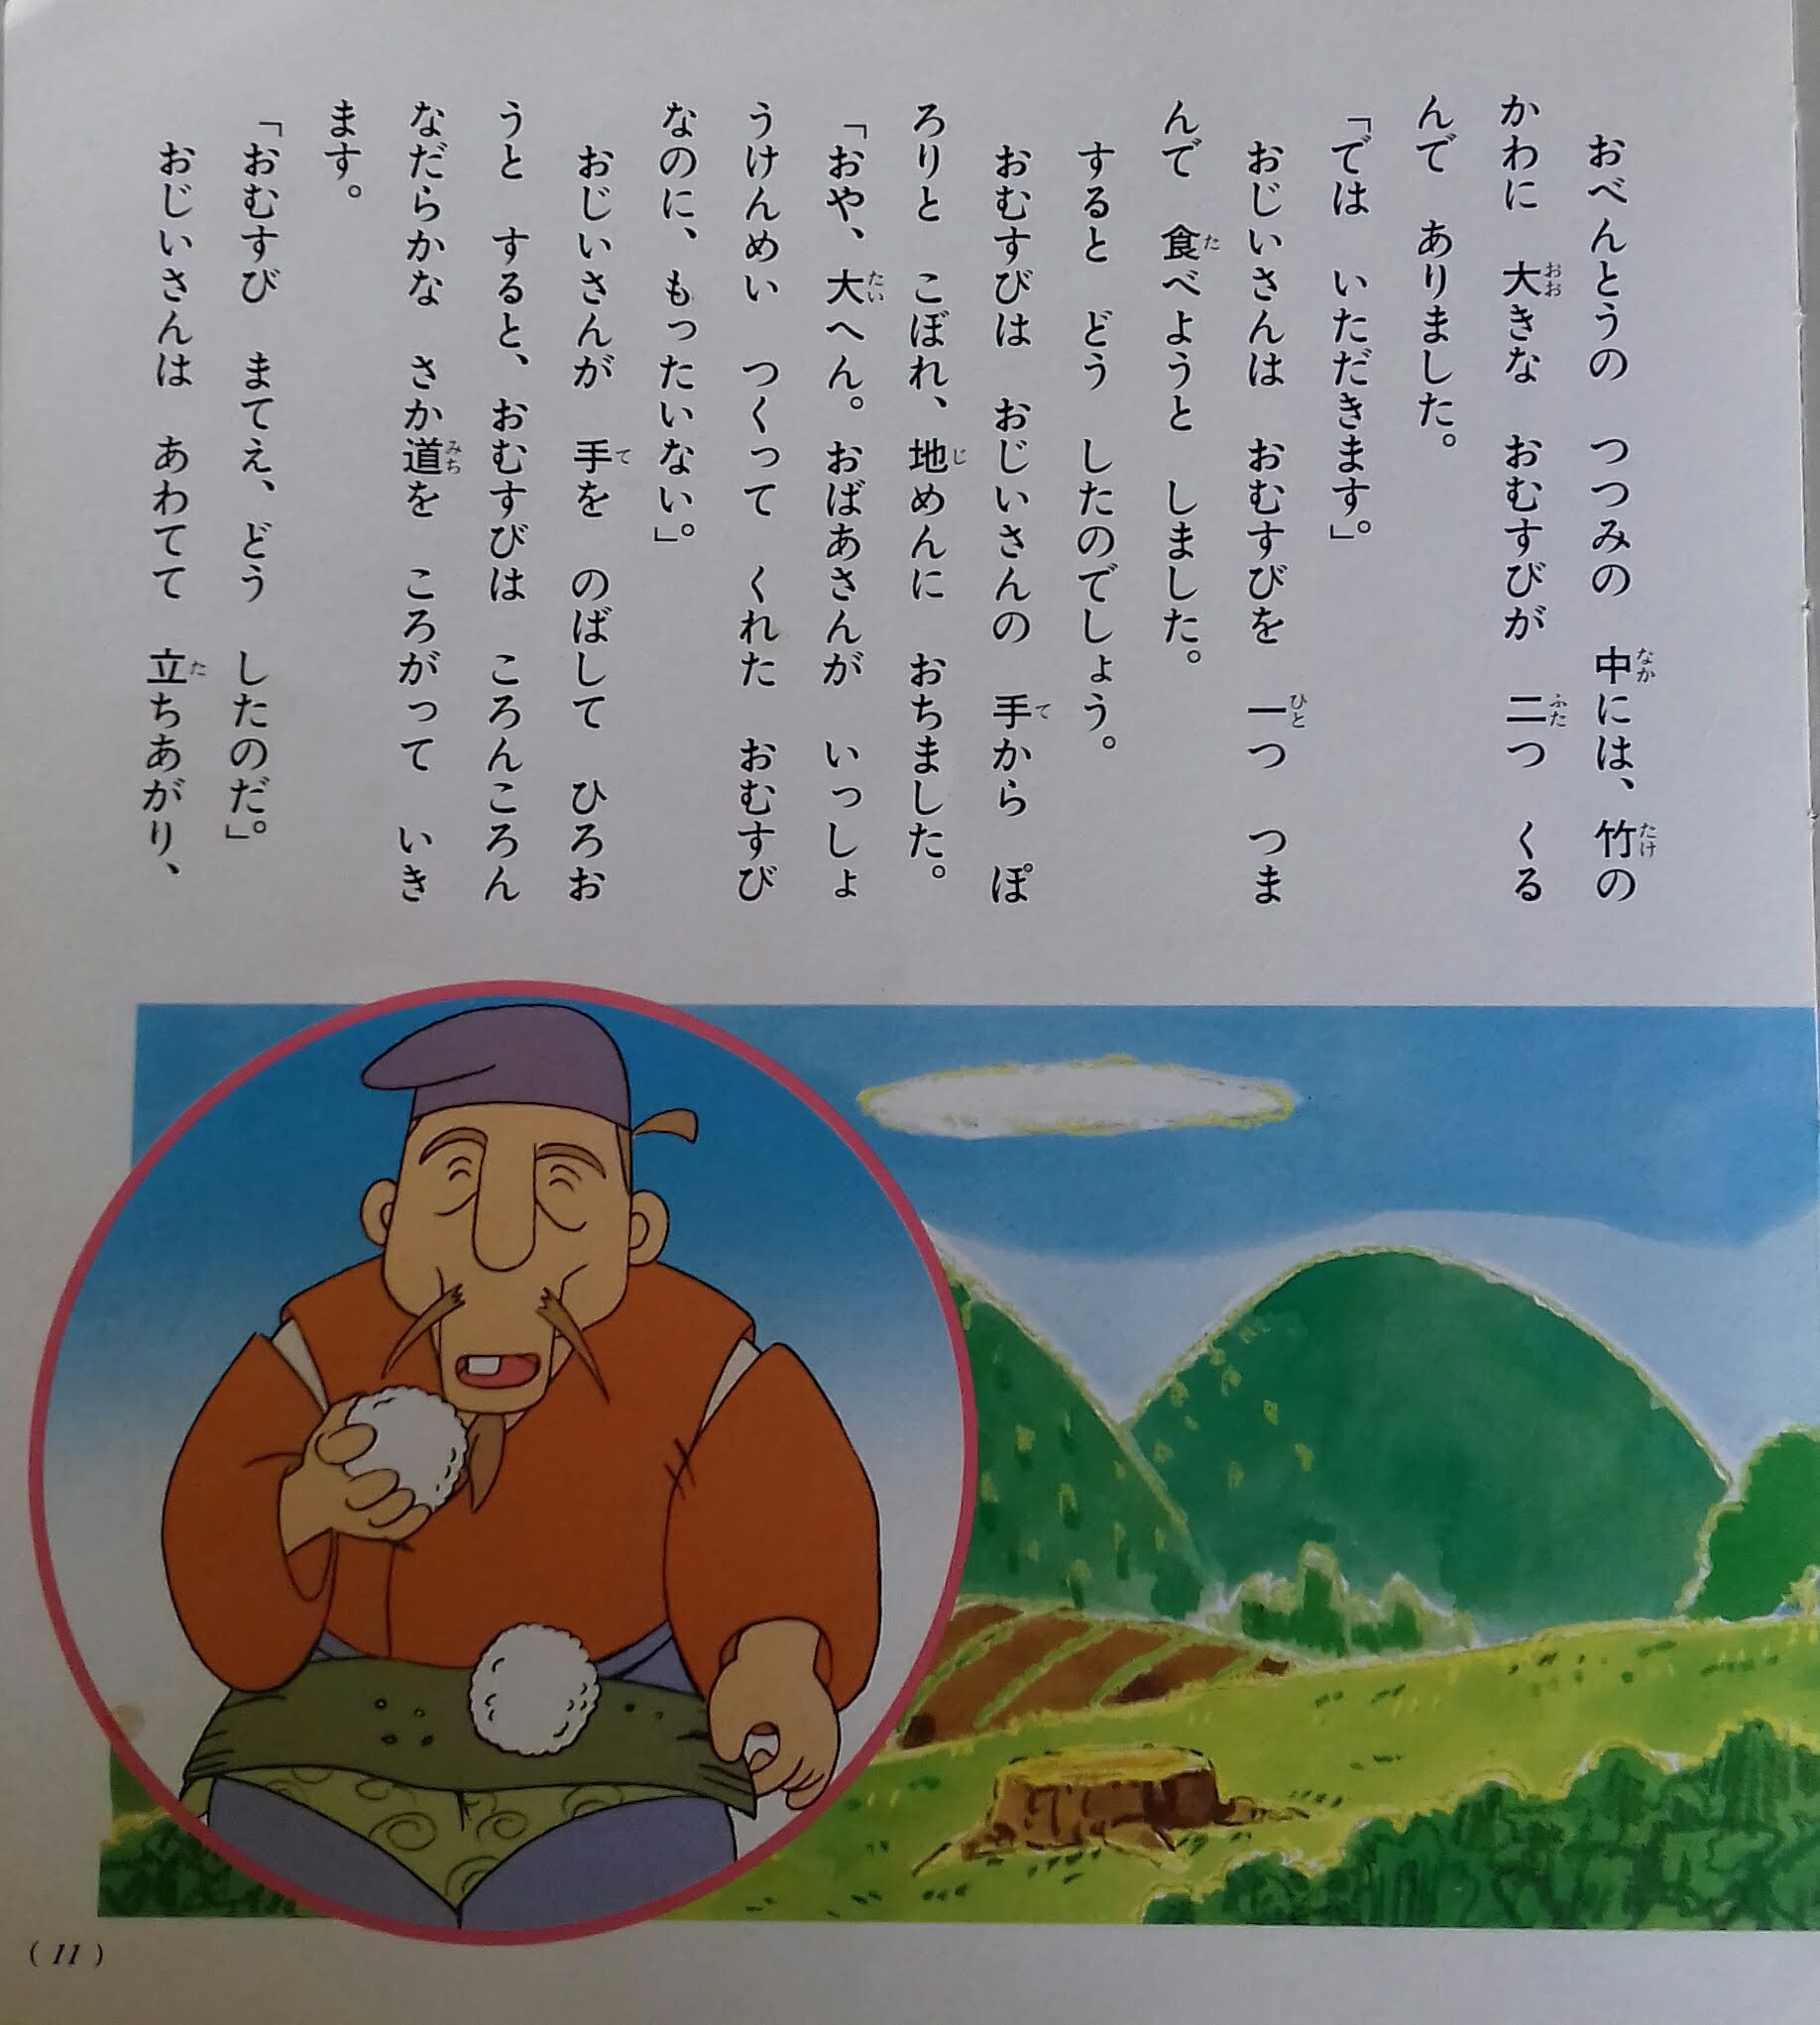 An old man is holding a rice ball in his hand and another rice ball is inside wrap on his lap